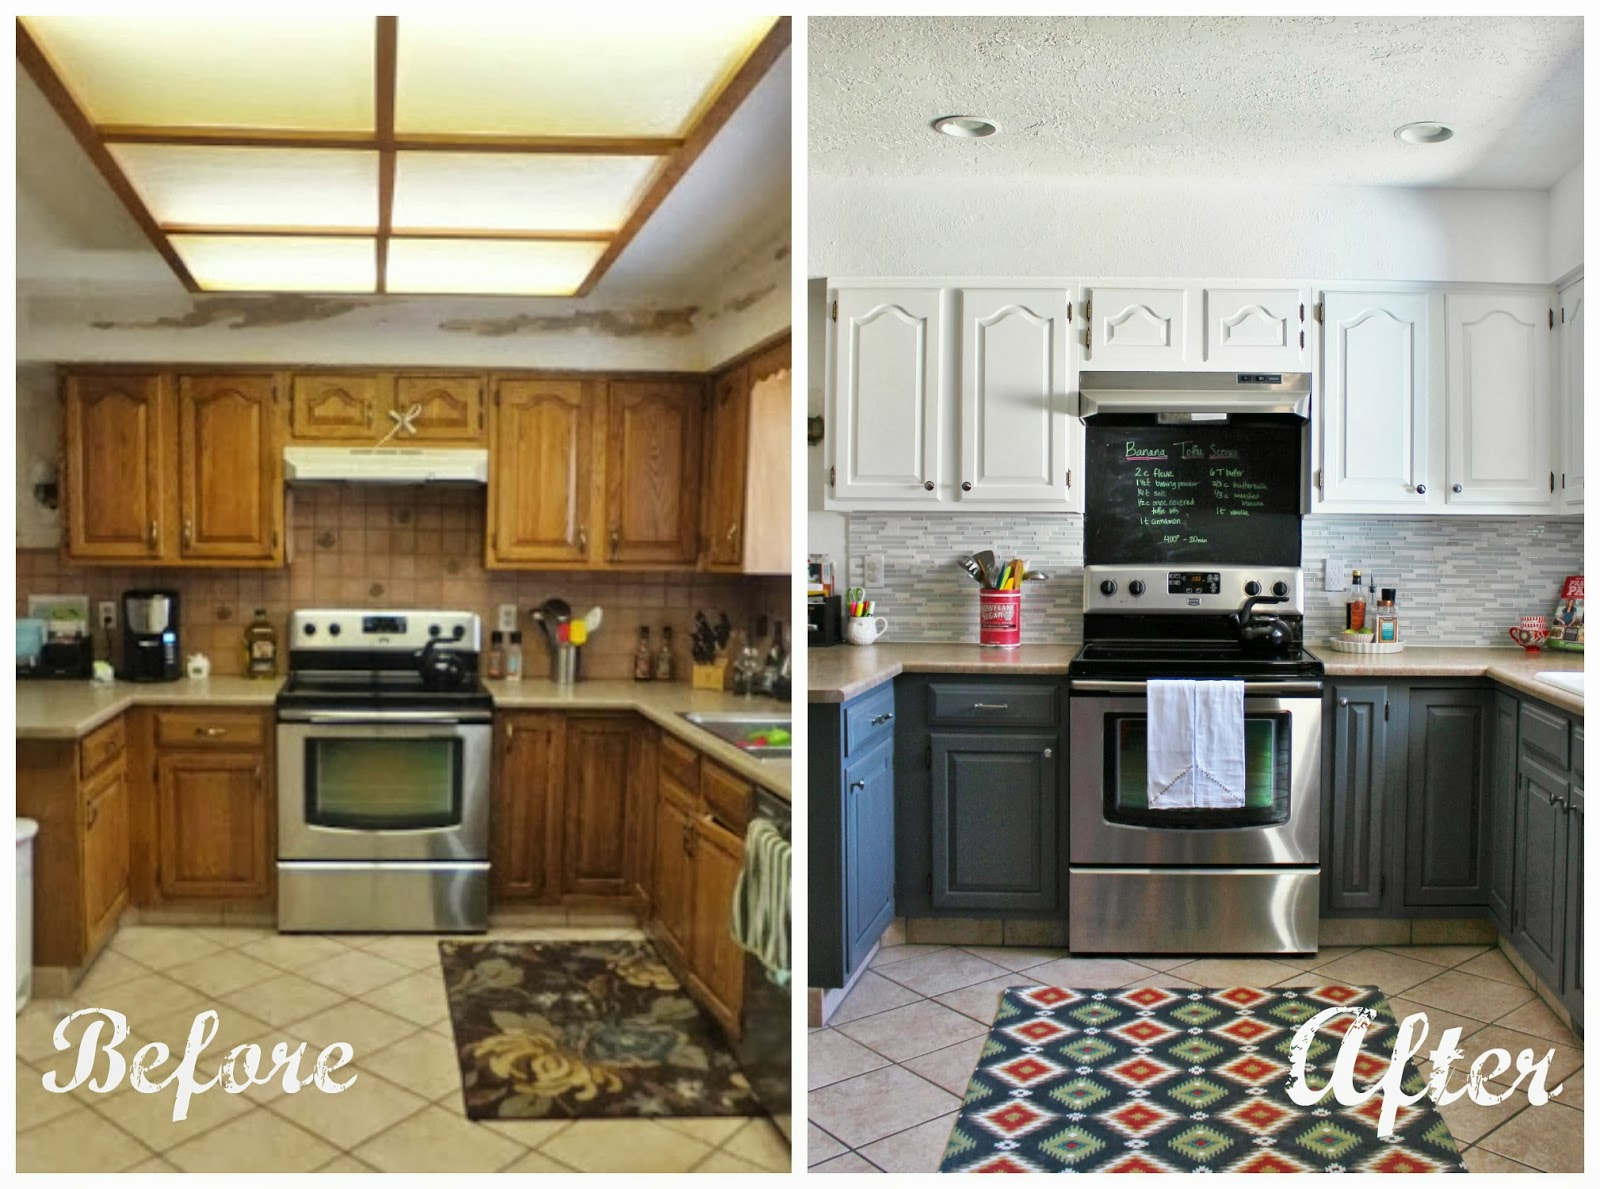 before and after photos of painted kitchen cabinets مطبخ مختلف بعد التعديل المرسال 11961